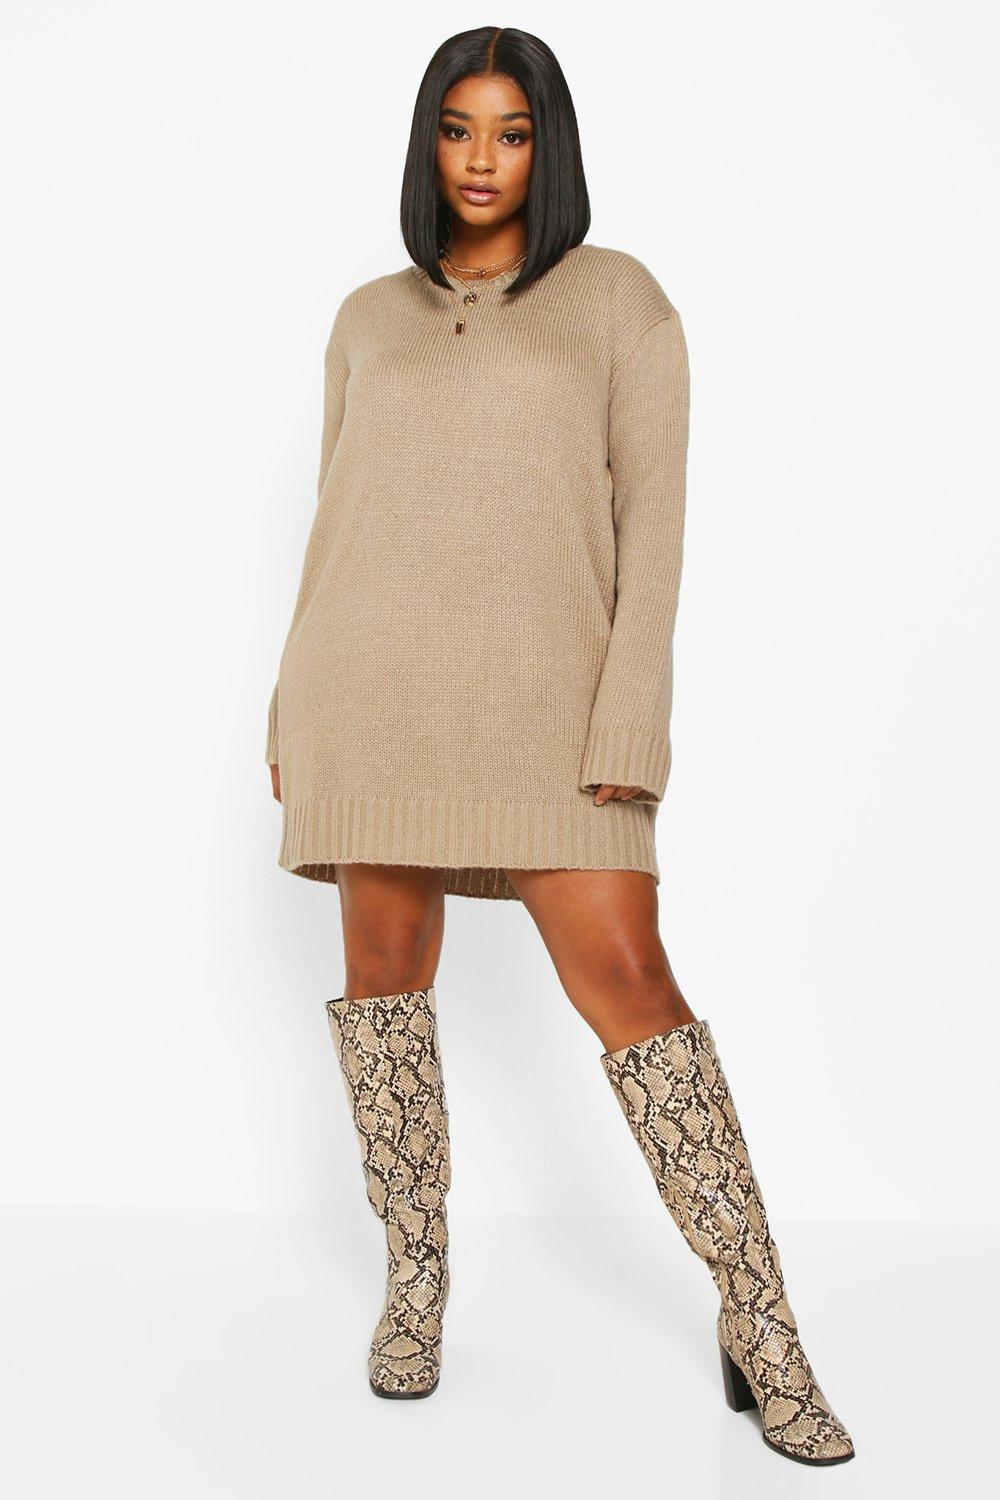 special section aliexpress replicas Plus Crew Neck Knitted Jumper Dress | Boohoo